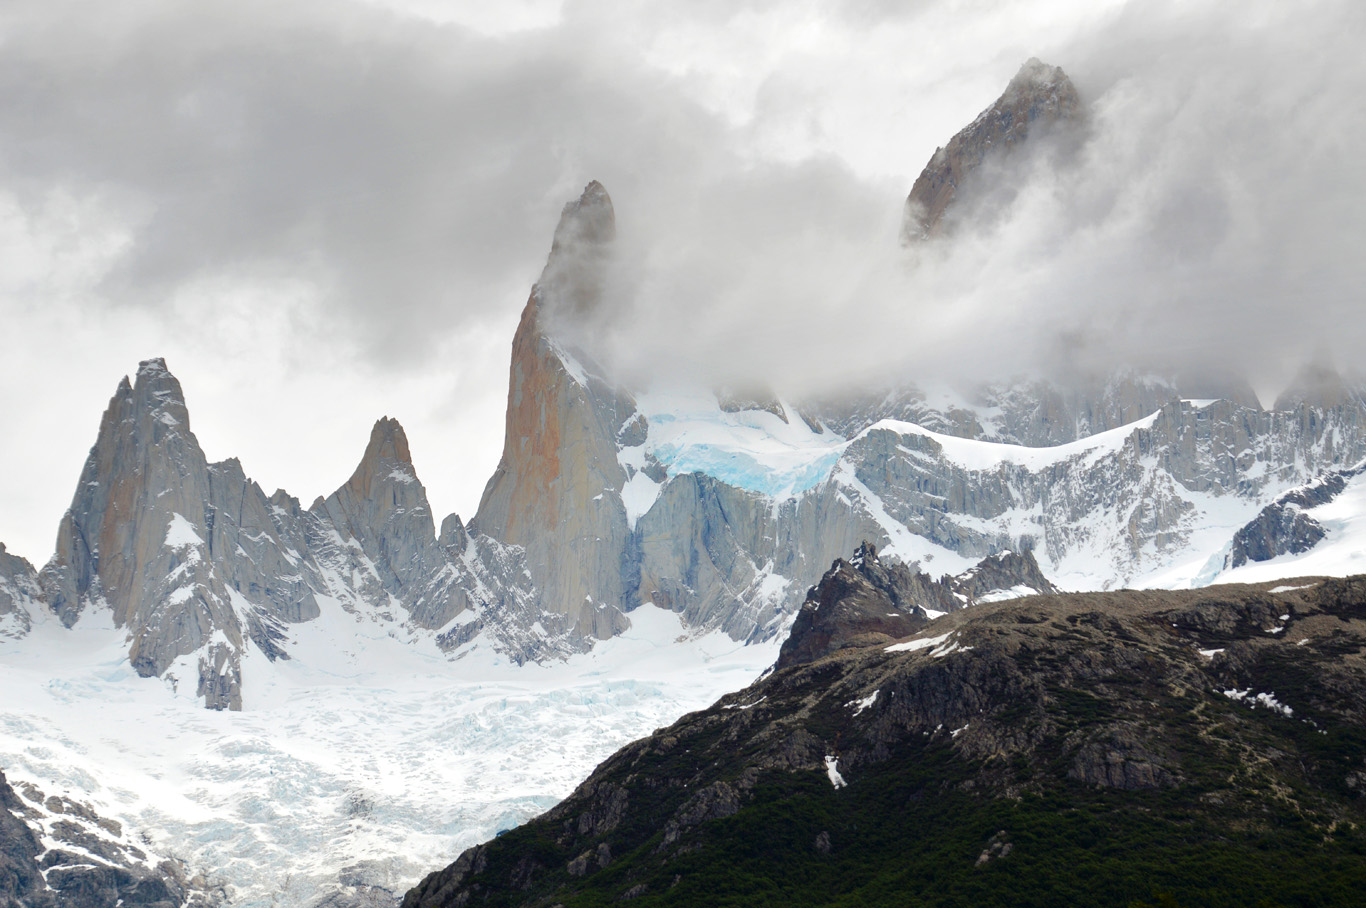 Fitz Roy seen from the trail